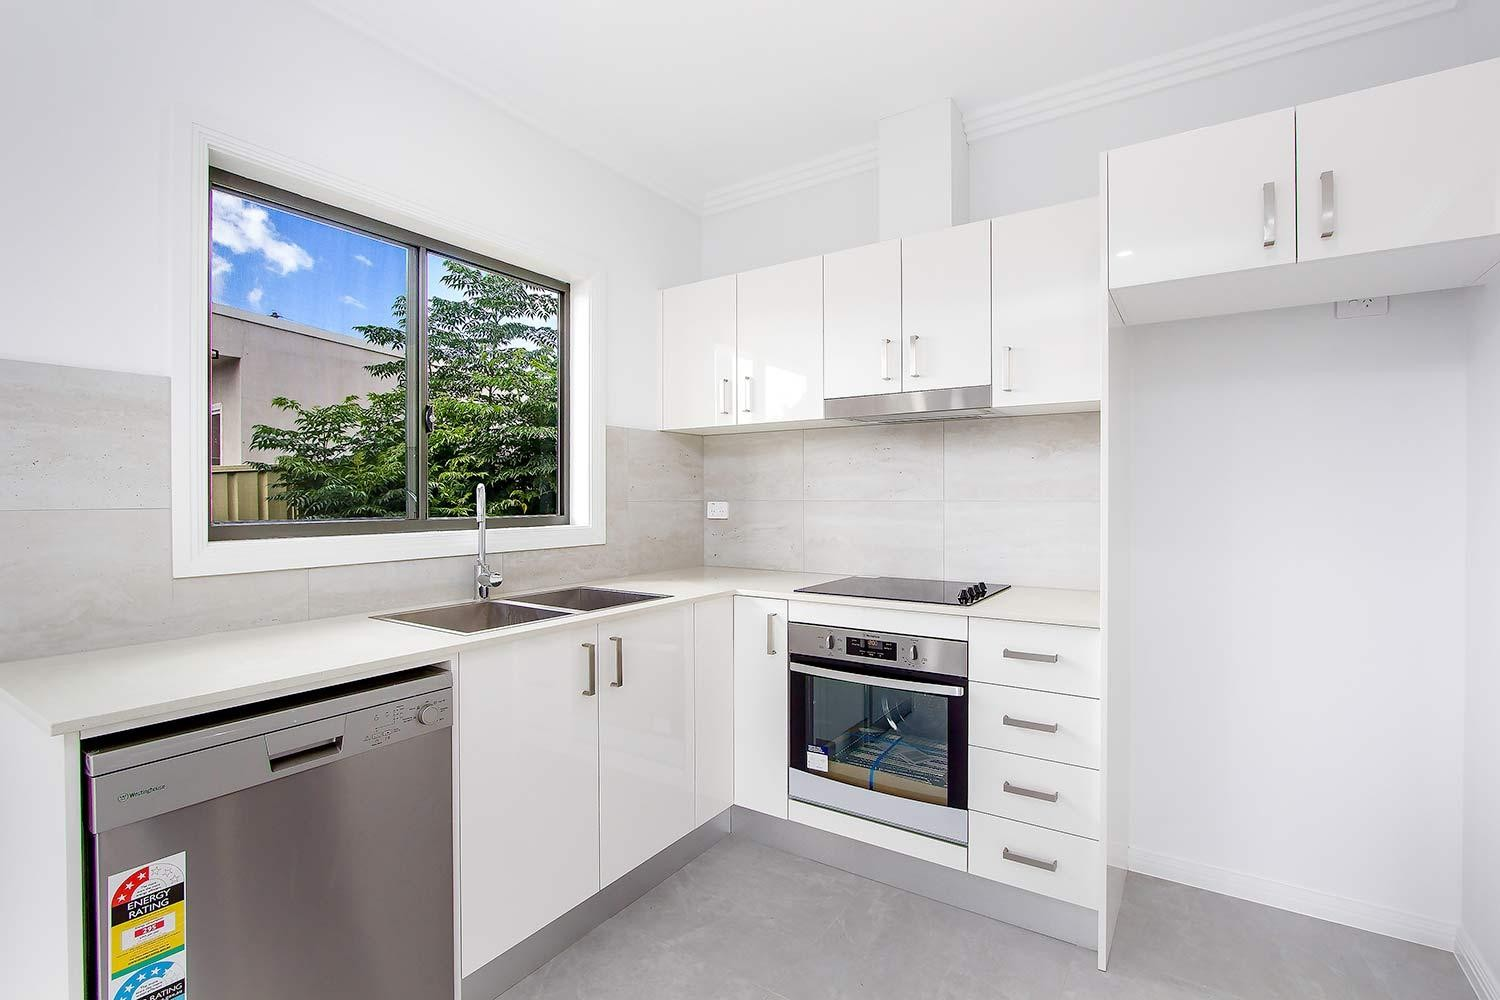 Brand New 2 Bedroom Granny Flat!! Don't Miss This One!!